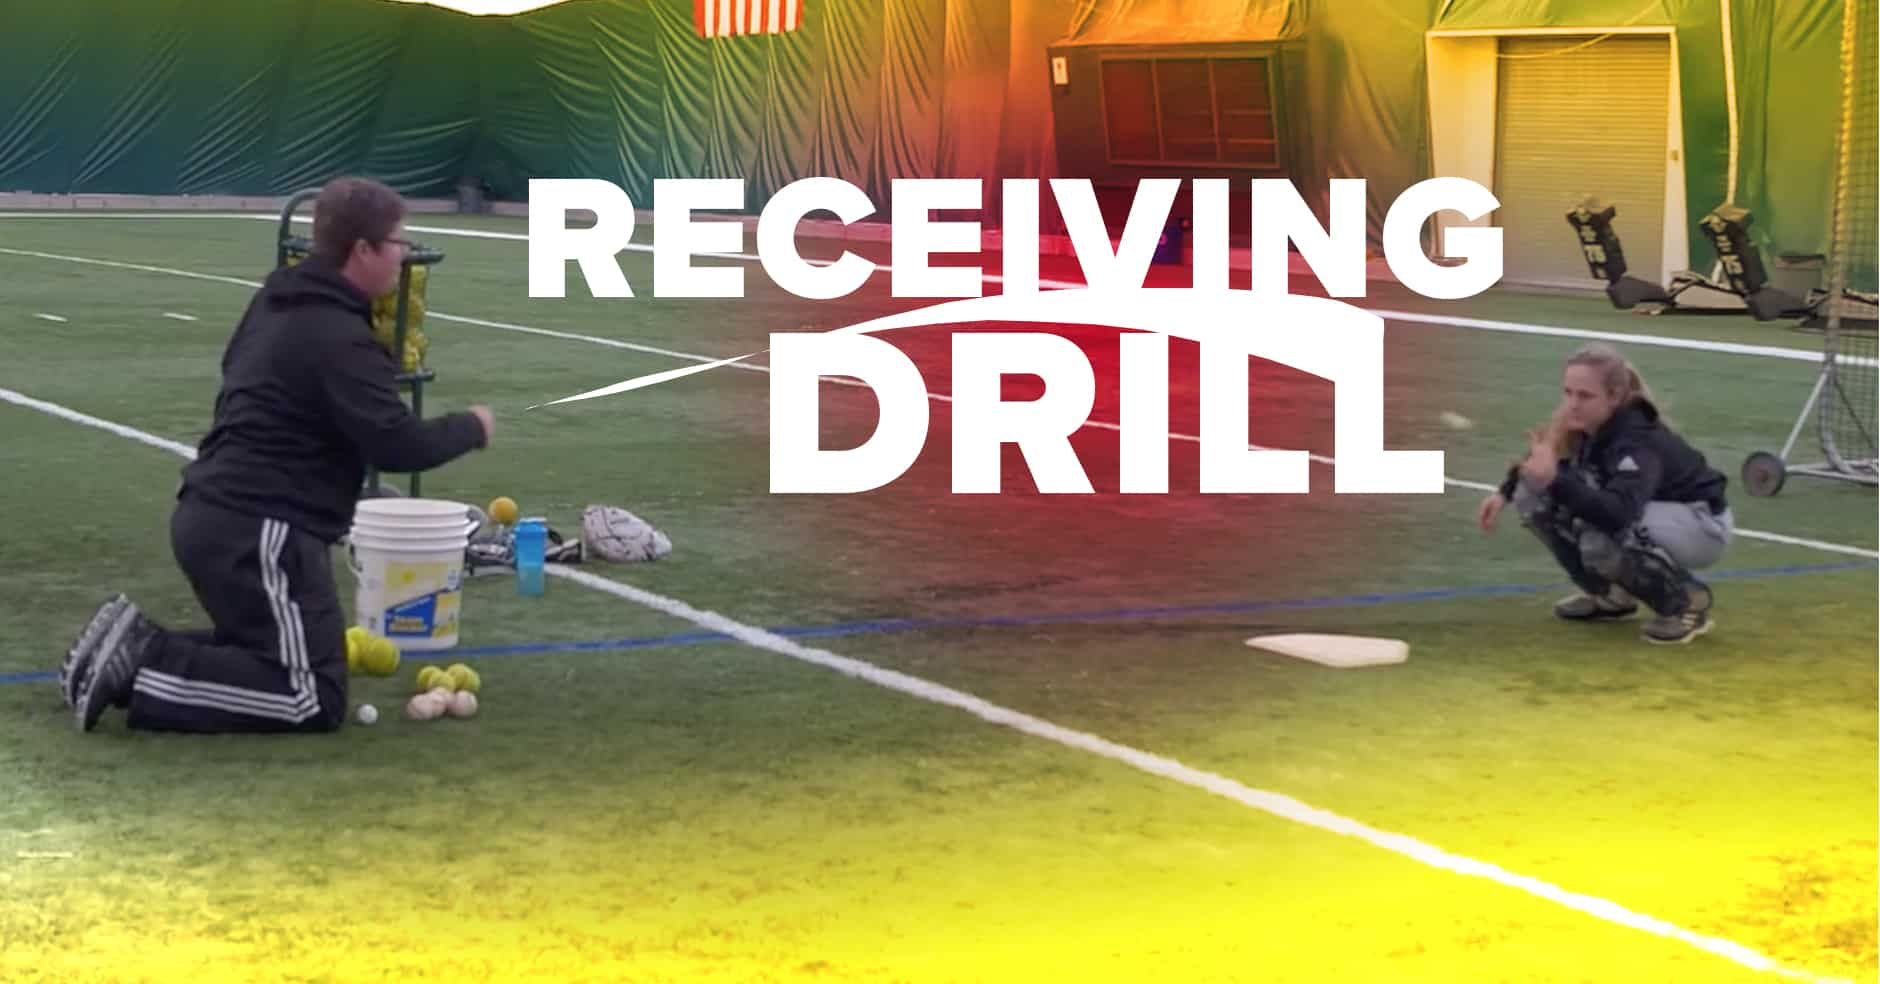 Catching Receiving Drill